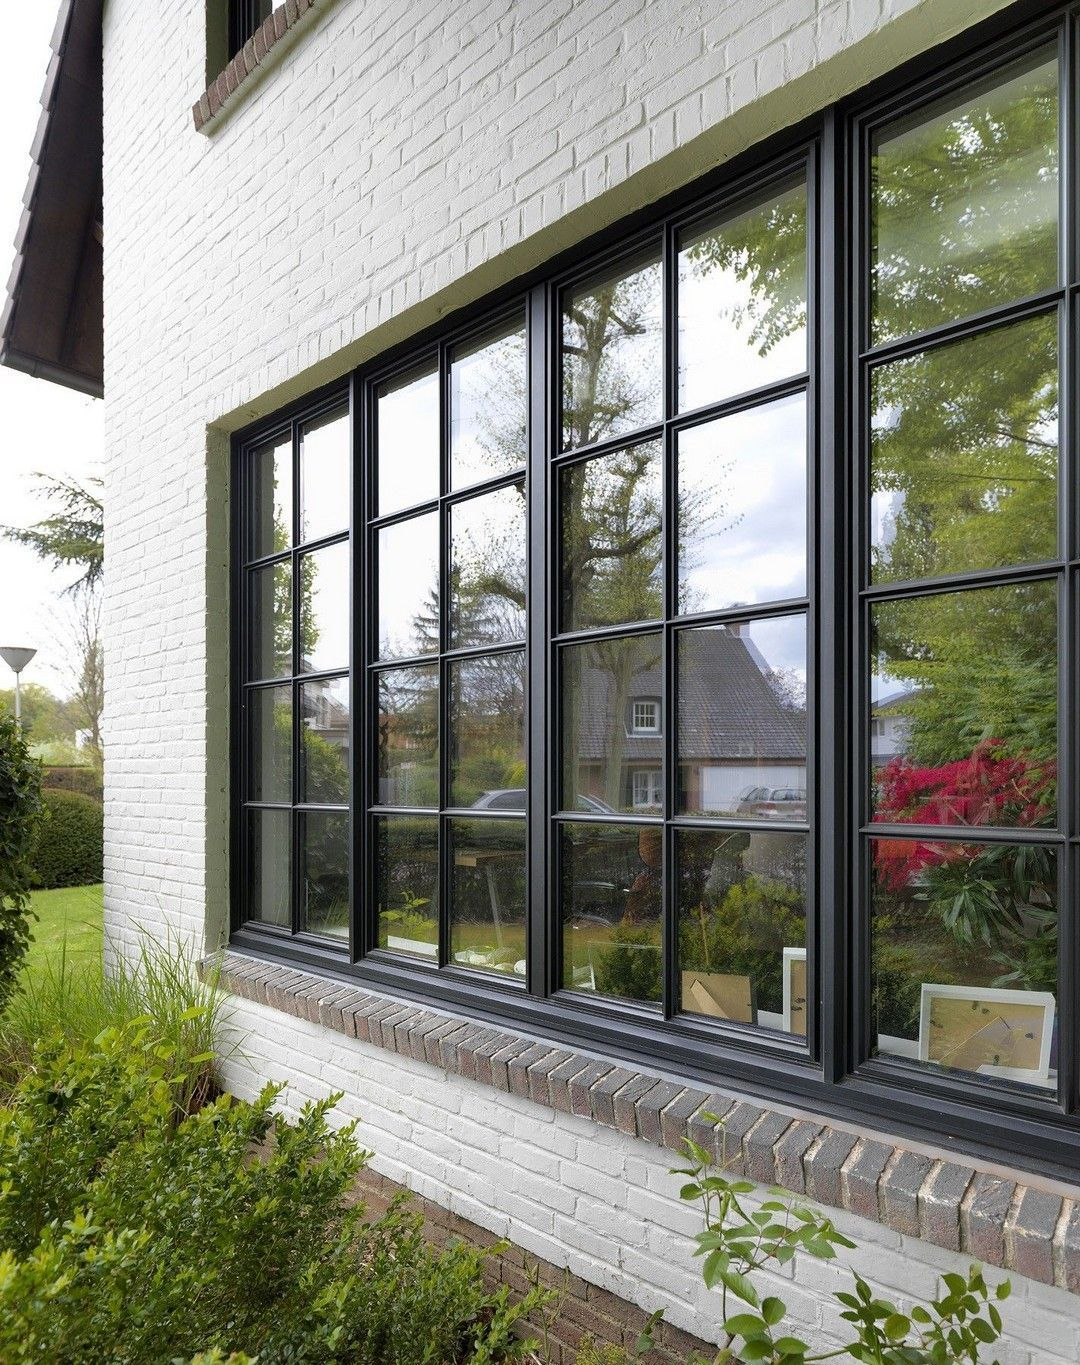 27 Charming Black Window Frames Ideas Window Replacement Can Be A Complicated Decision When You Do Not Know An In 2020 House Windows Window Design Black Window Trims